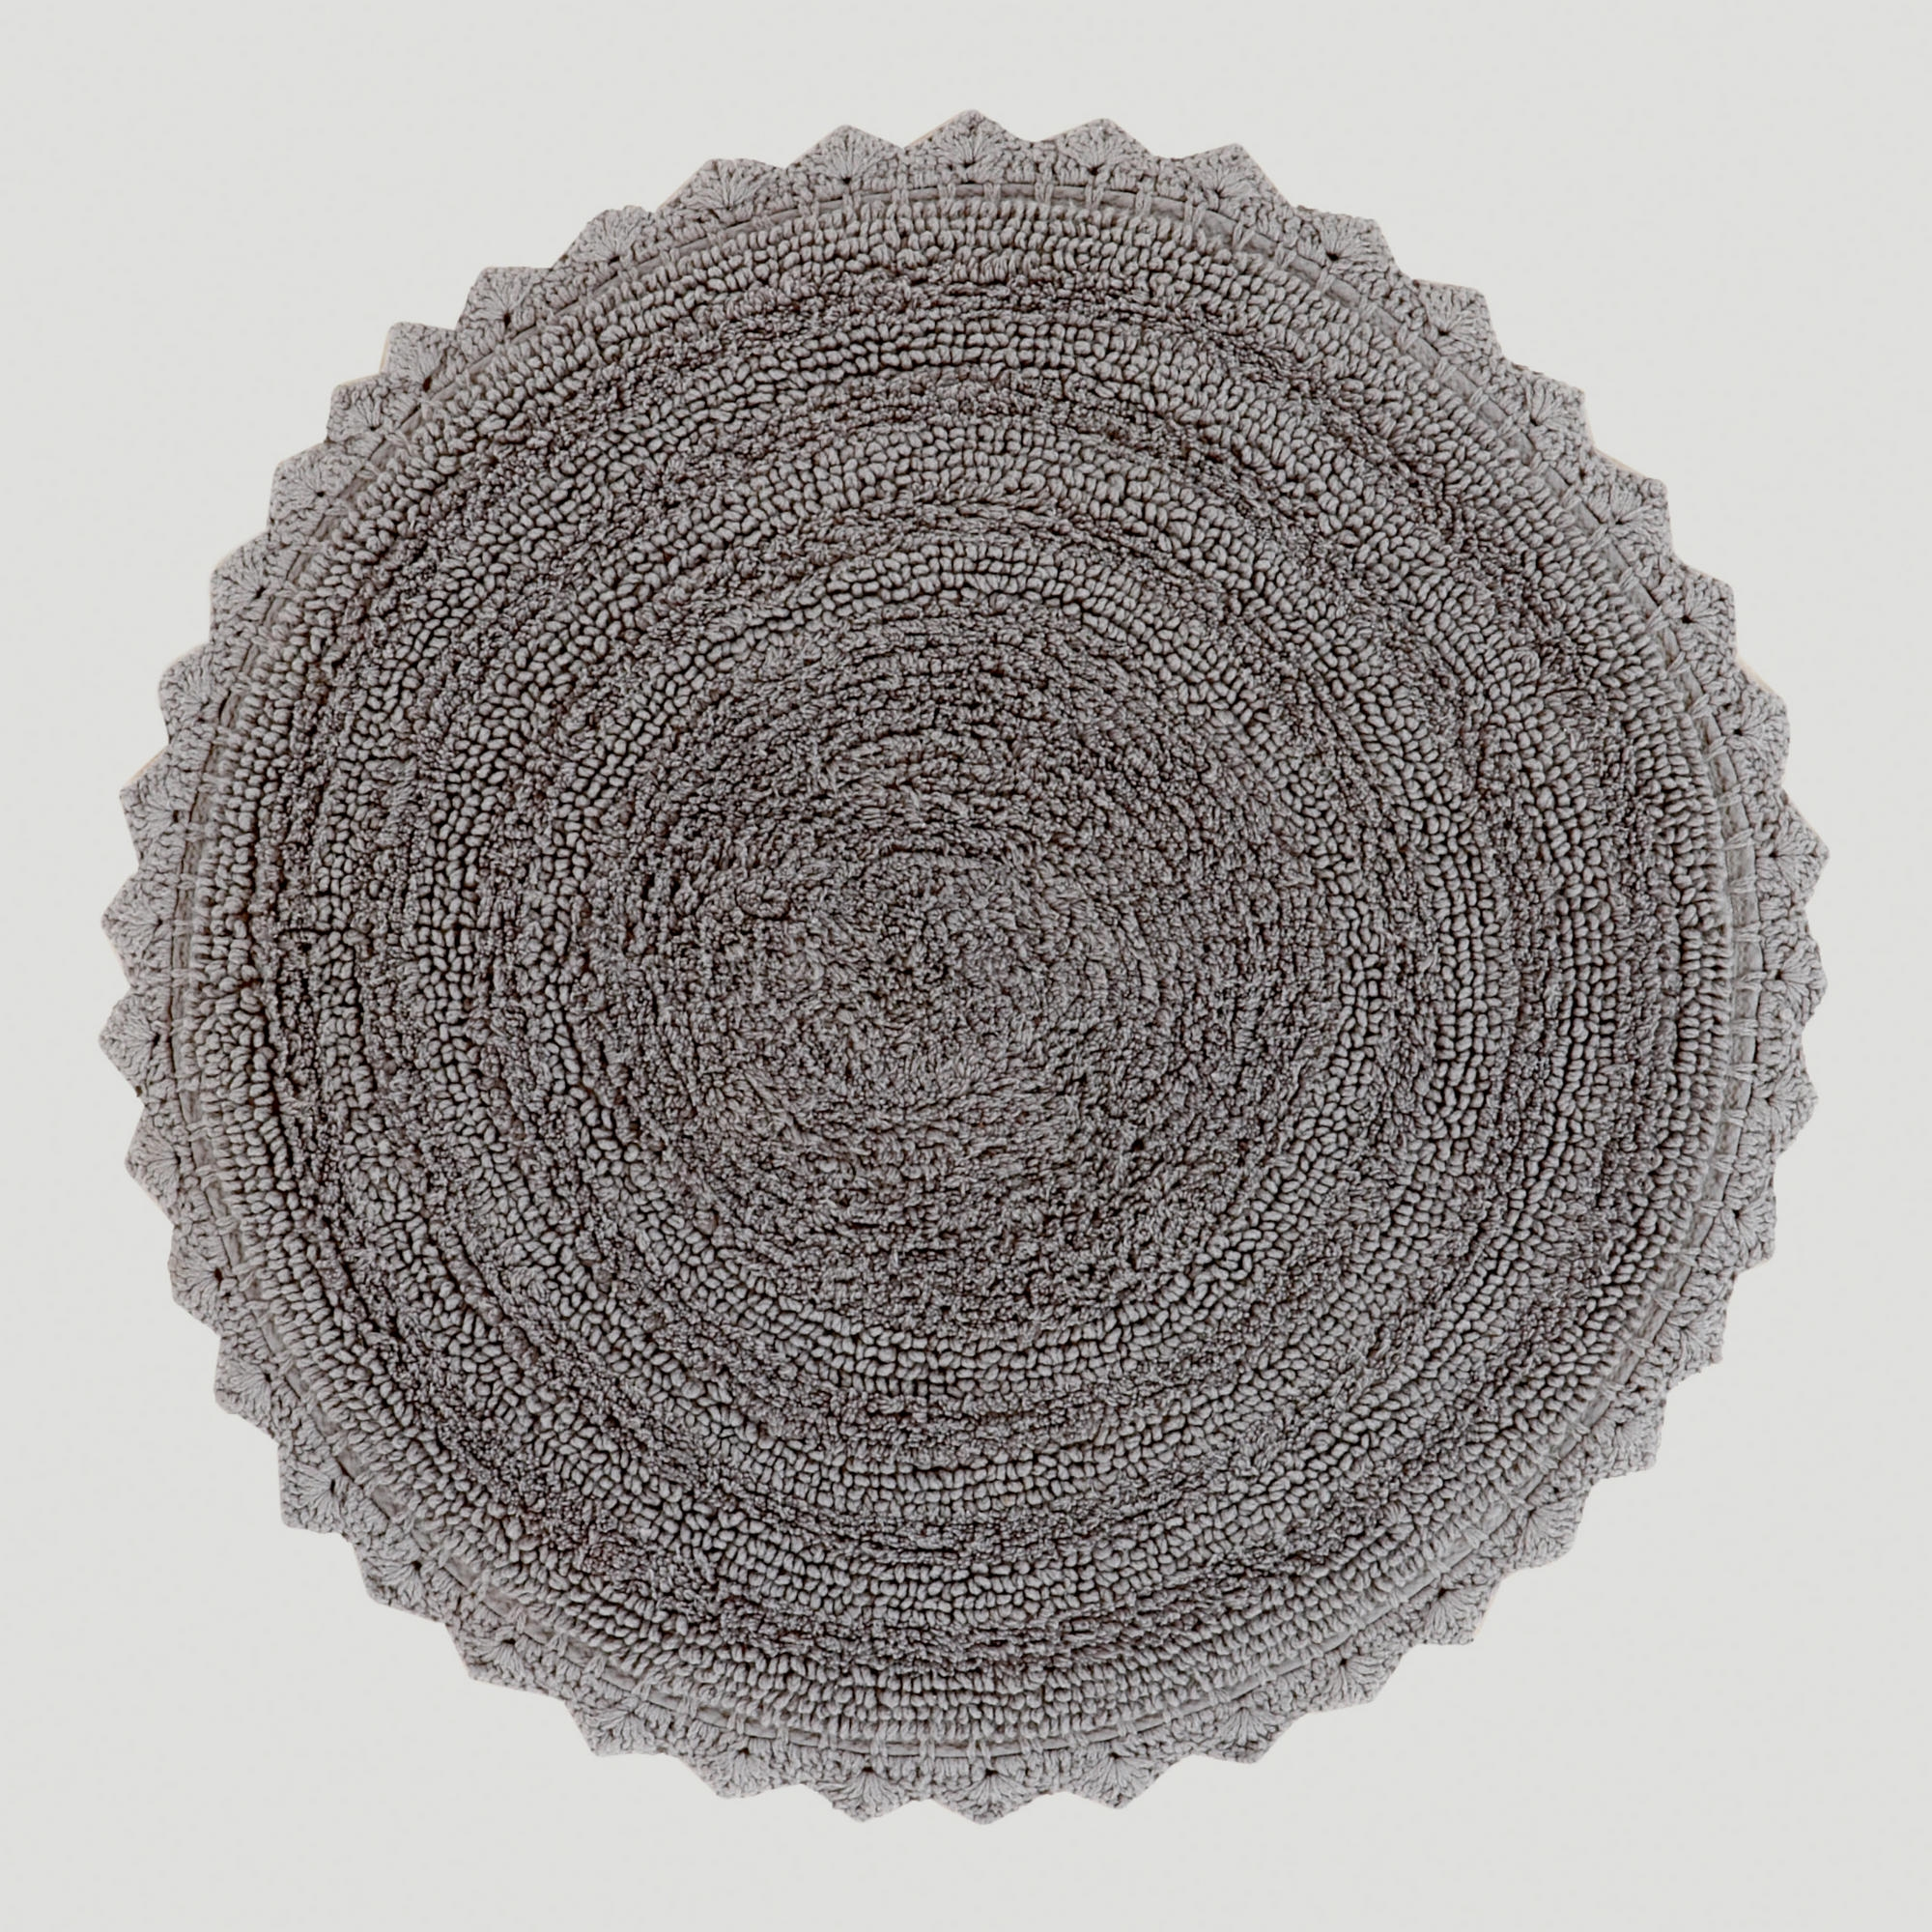 Permalink to Colorful Round Bathroom Rugs